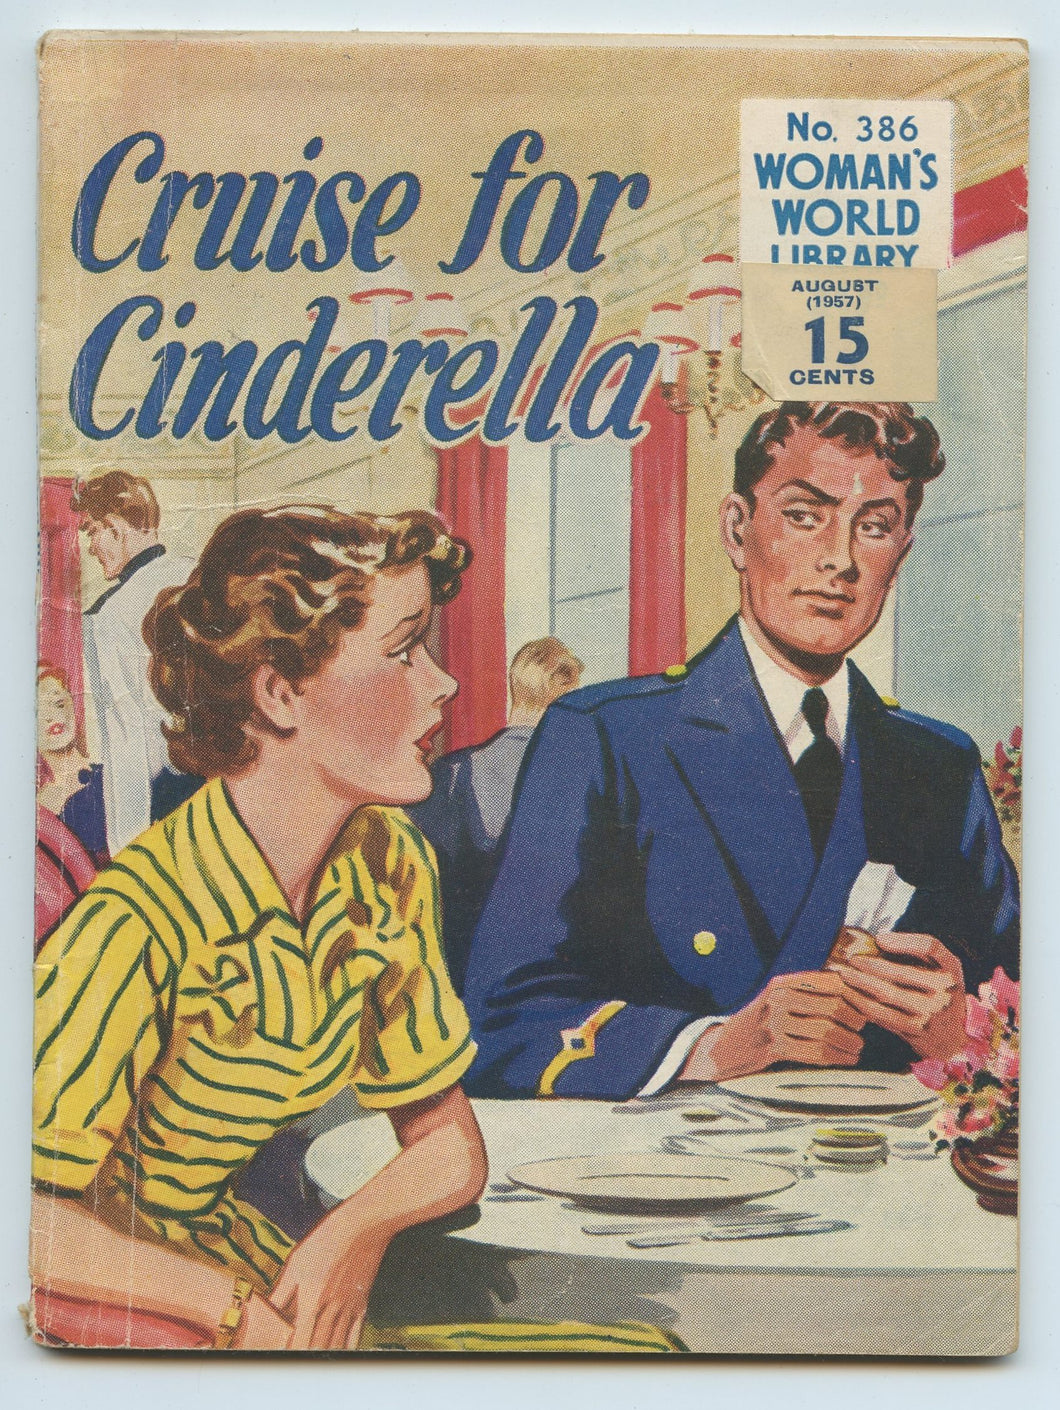 Cruise for Cinderella